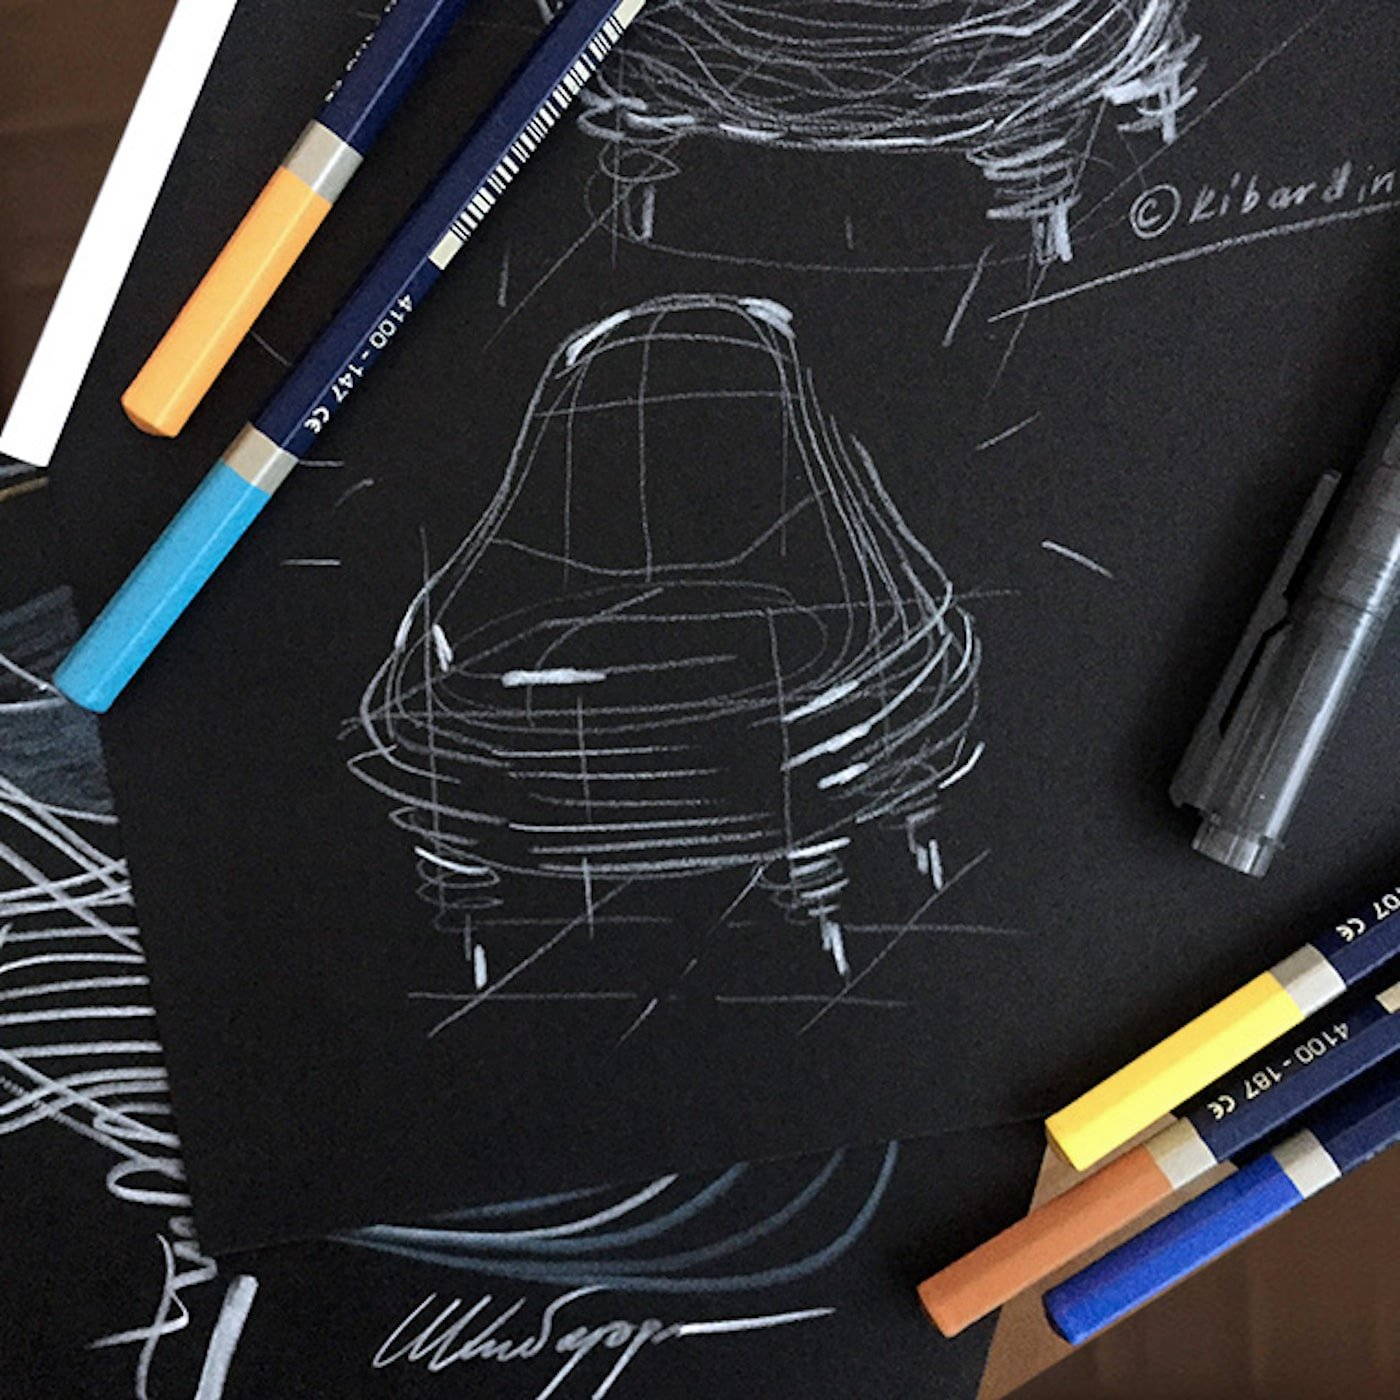 Handsketches of paper art chair by Vadim Kibardin